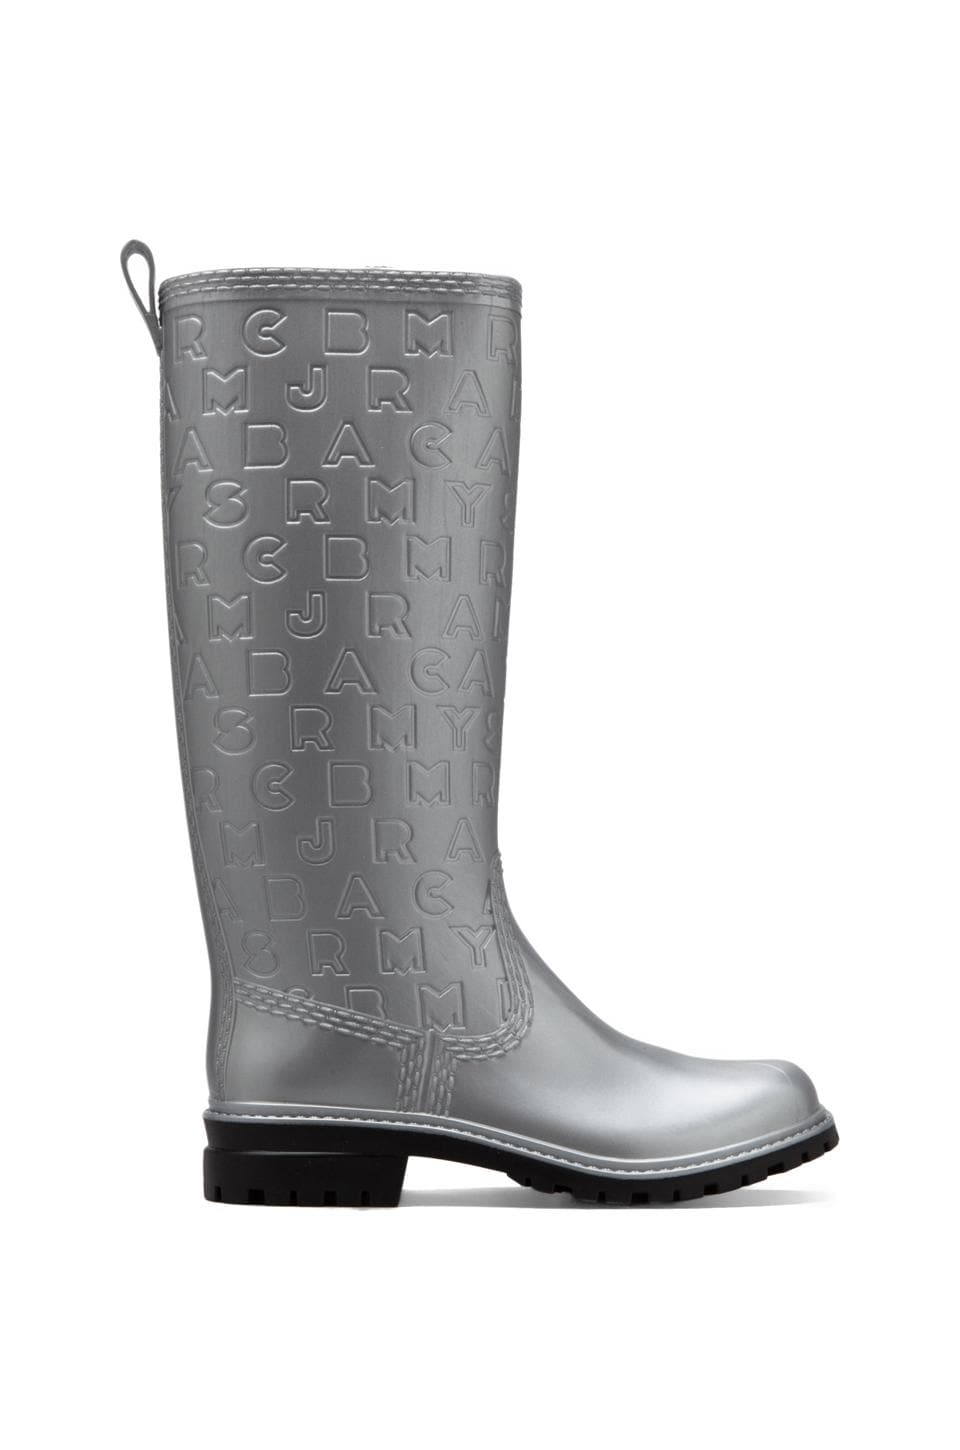 Marc by Marc Jacobs Rainy Day Rubber Rainboot in Silver